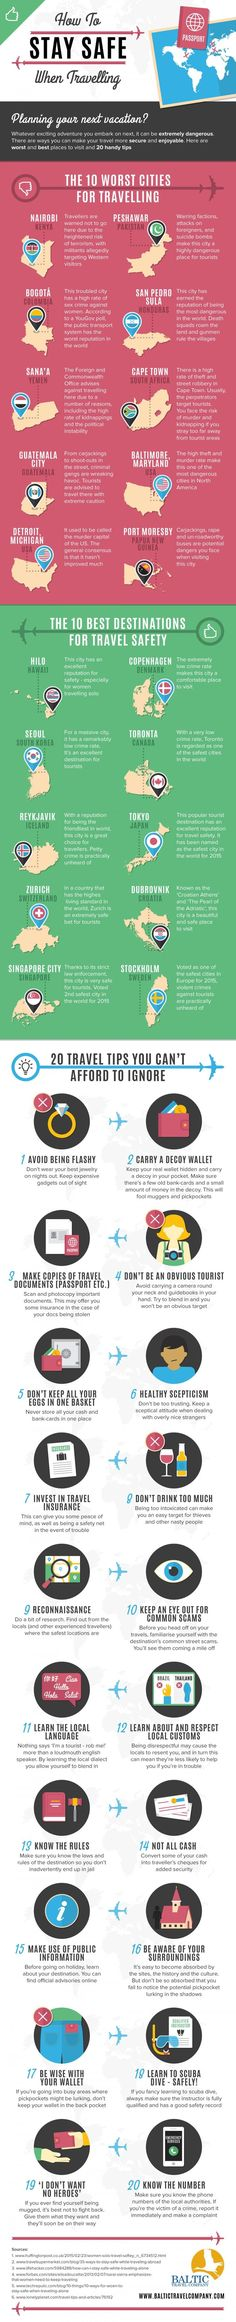 travel and trip infographic how to stay safe when travelling infographic description how to stay safe when travelling infographic source